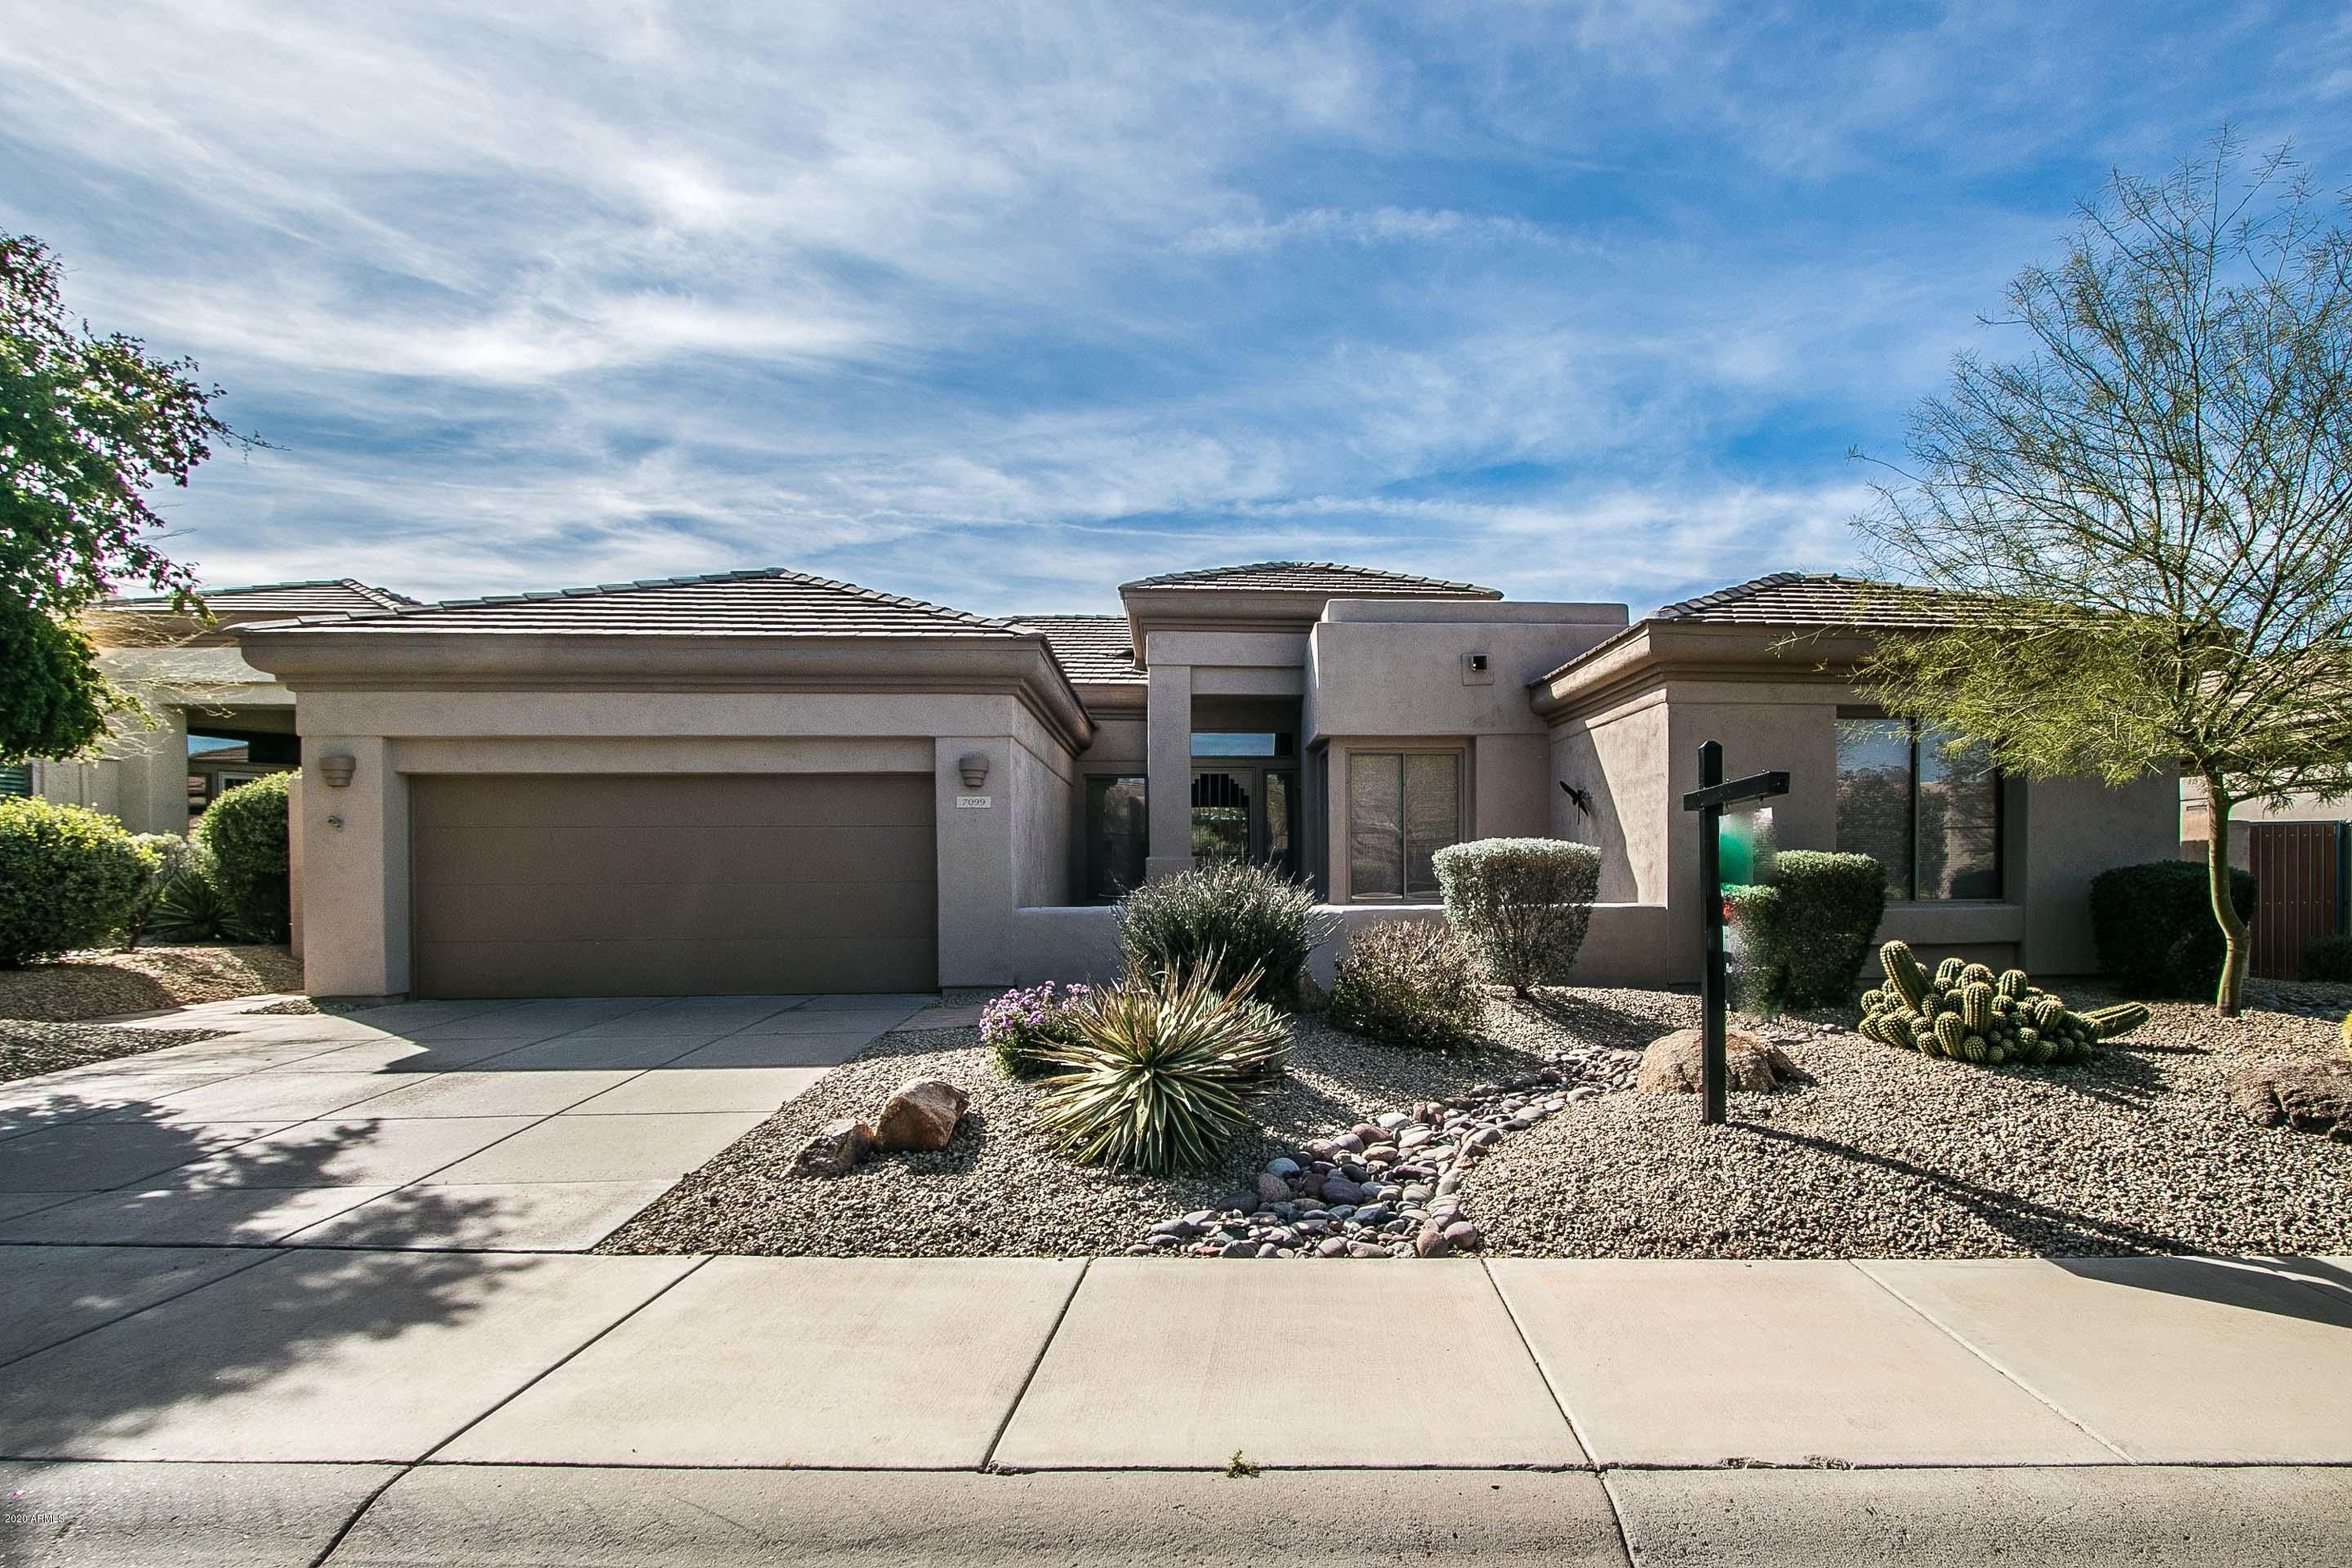 Photo of 7099 E MIGHTY SAGUARO Way, Scottsdale, AZ 85266